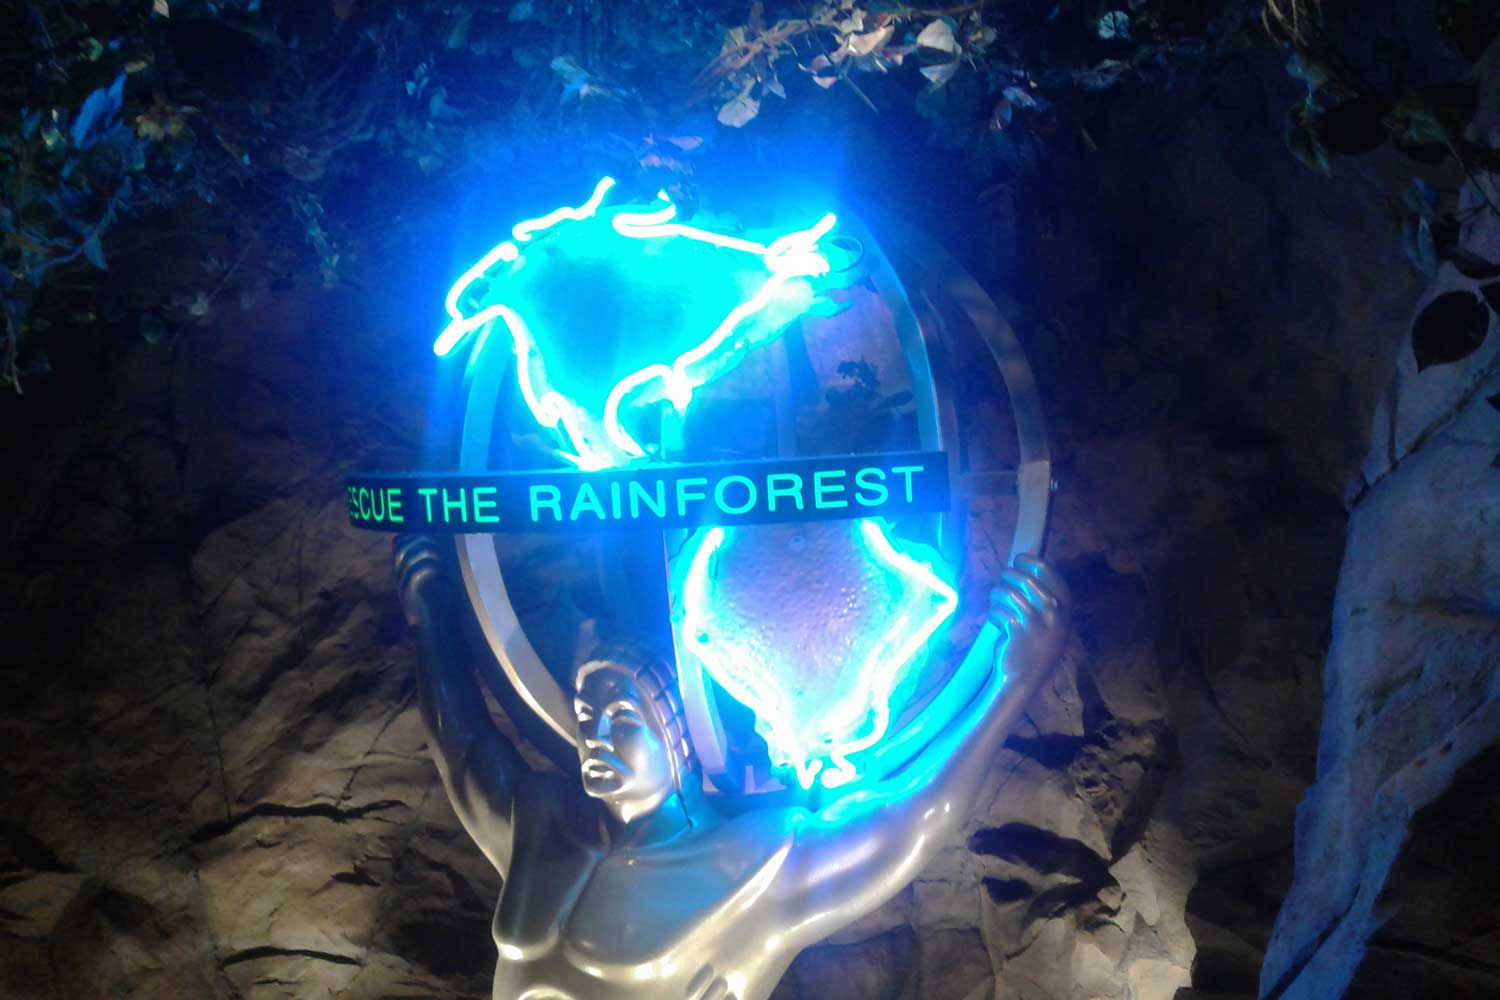 rainforest cafe neon sign repair servic